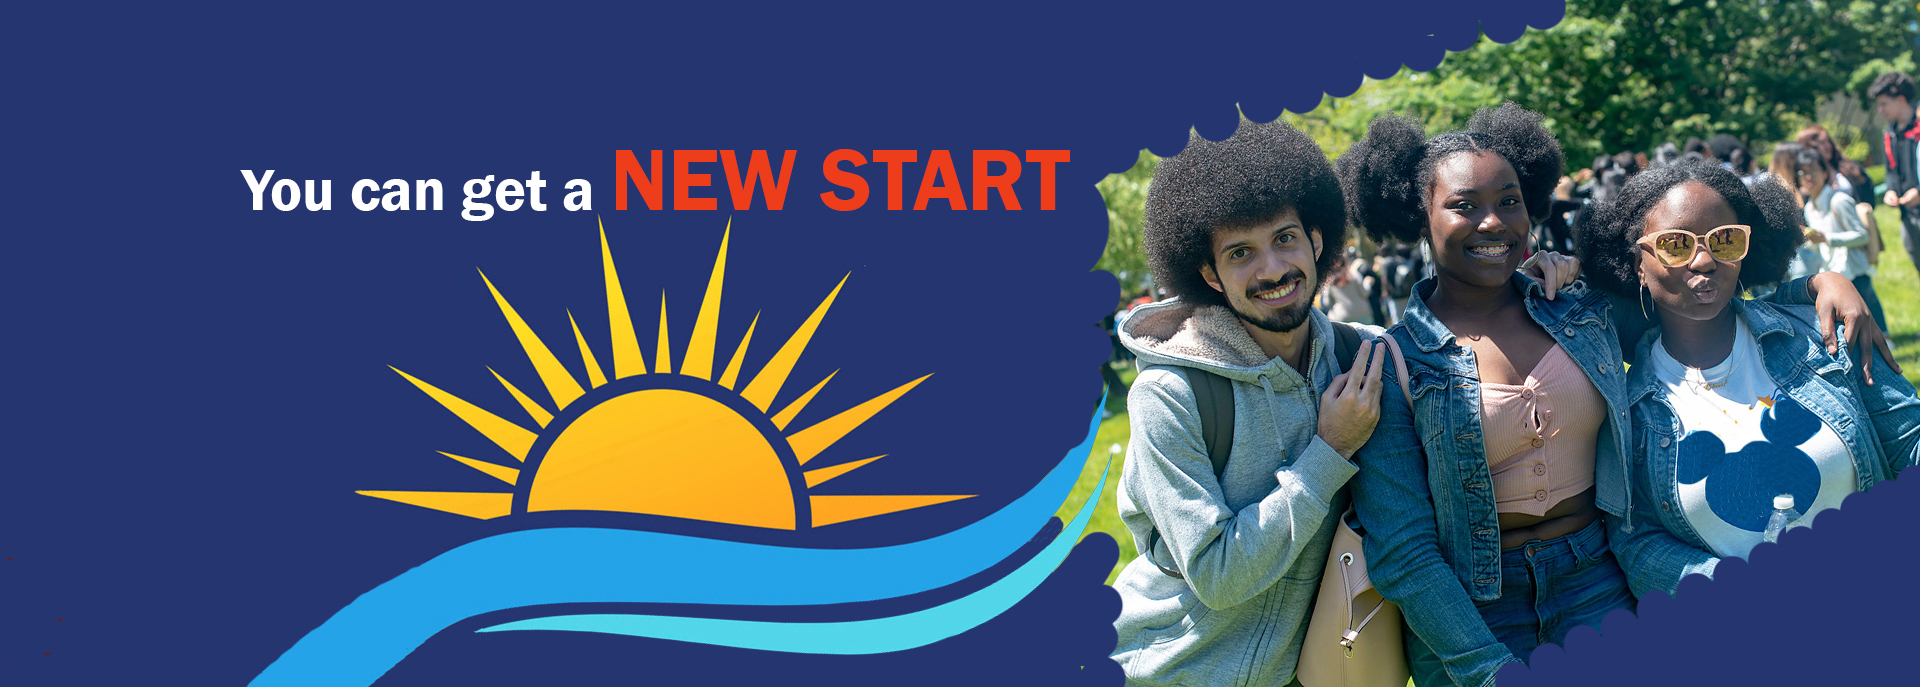 You can get a New Start